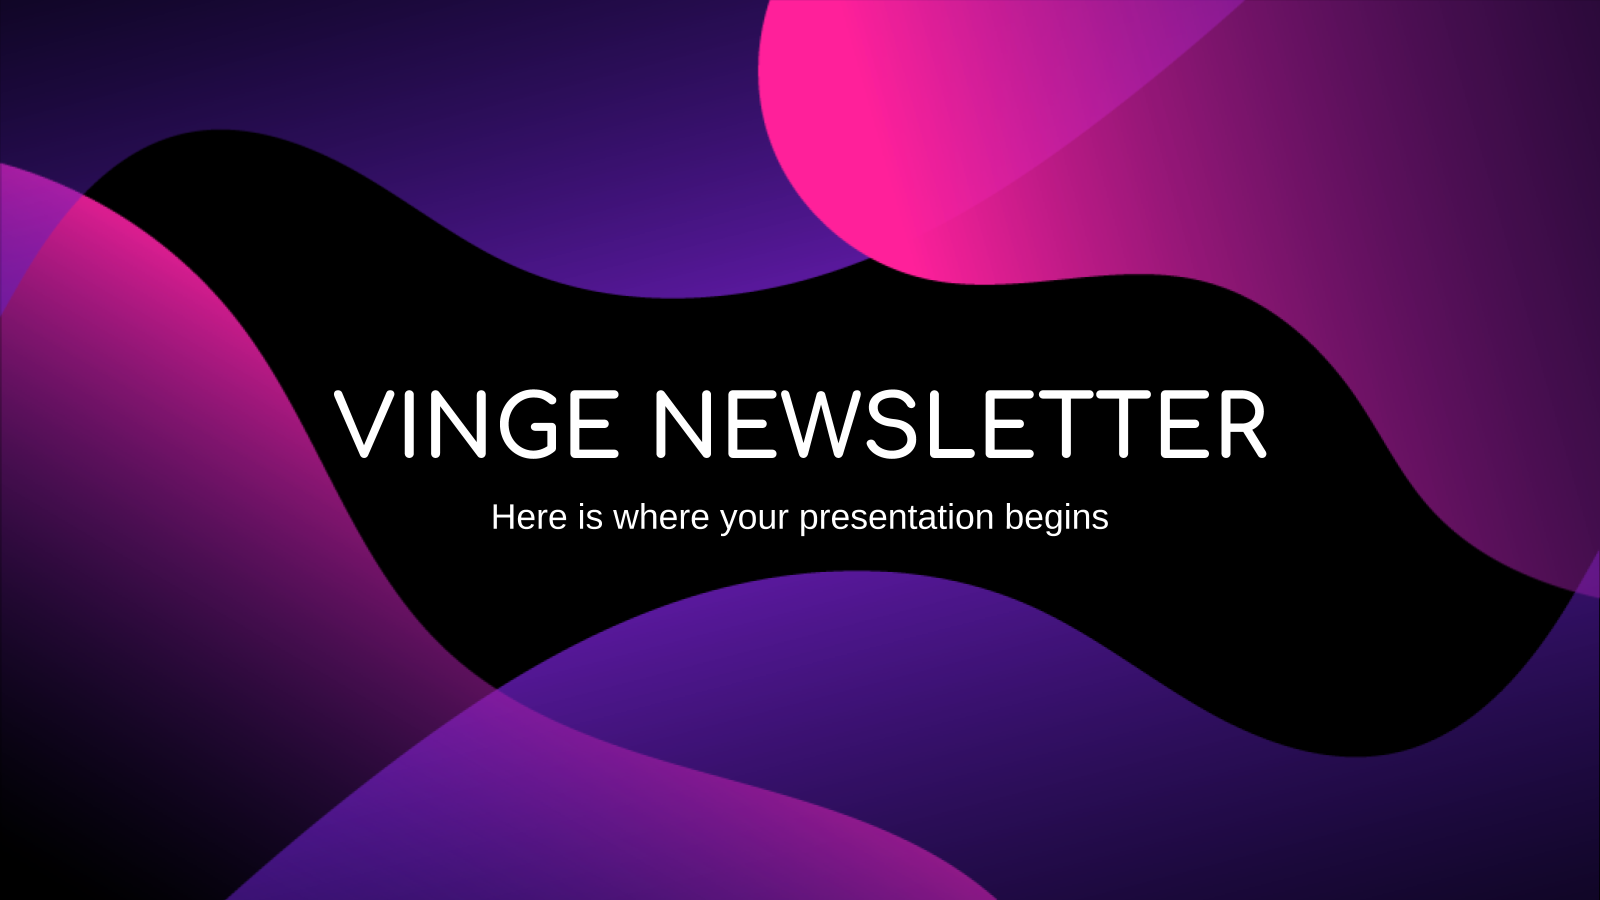 Vinge Newsletter presentation template